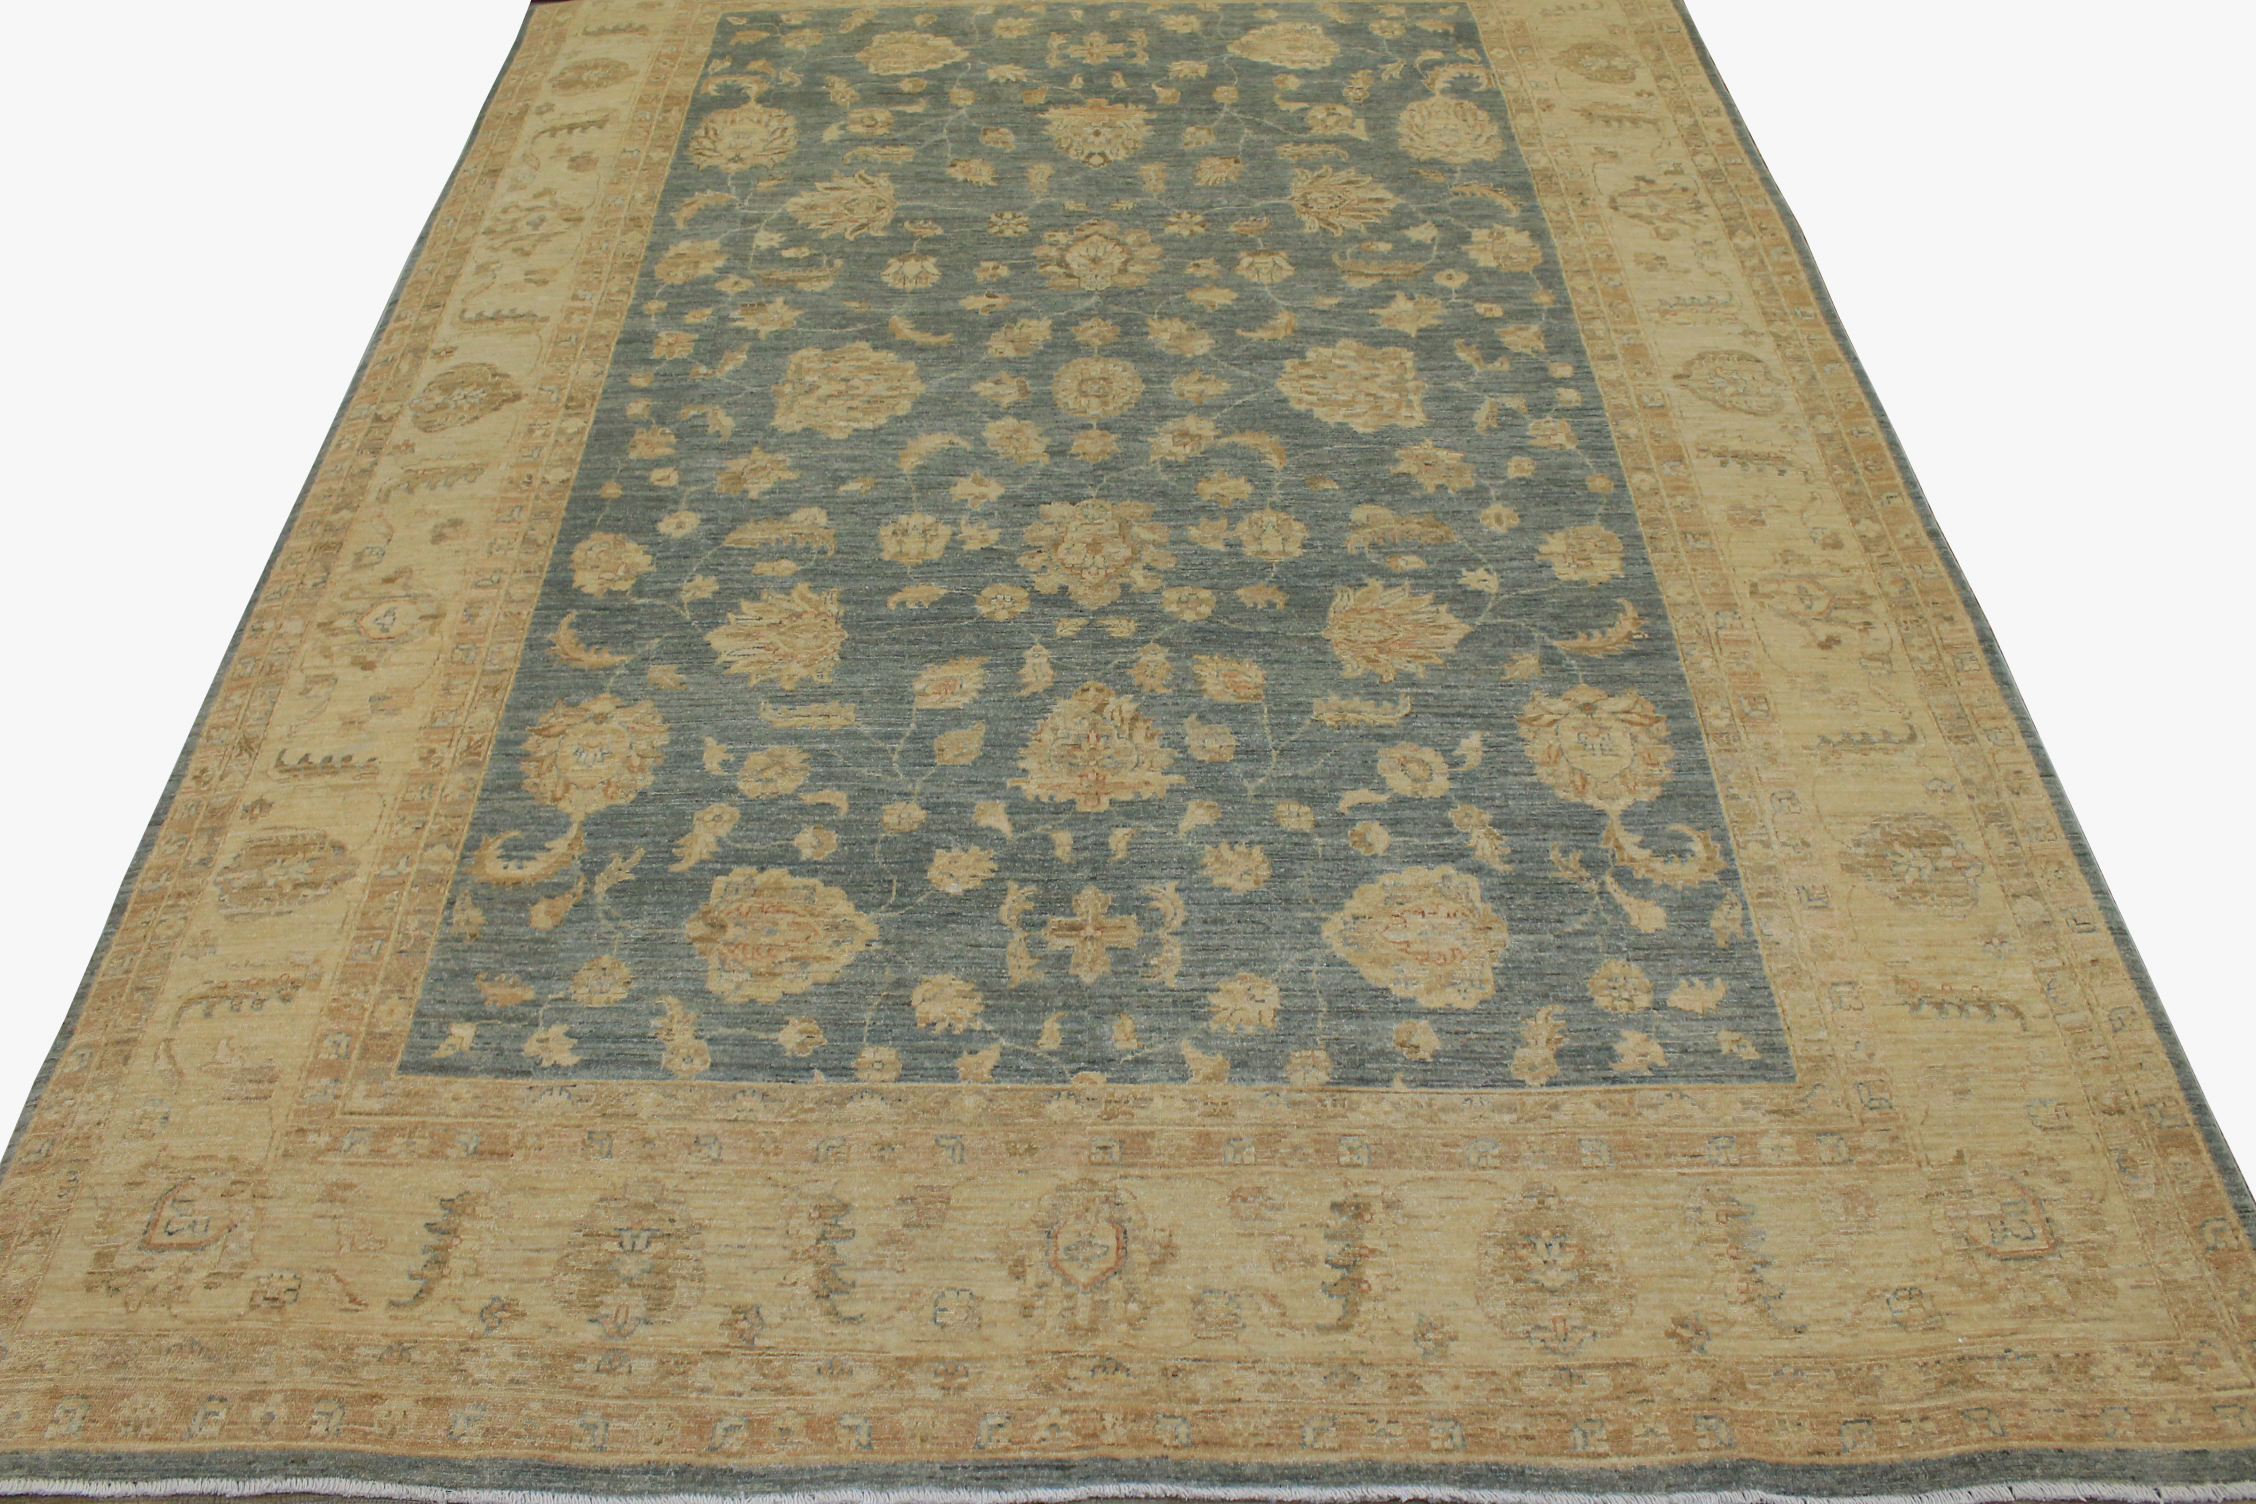 9x12 Peshawar Hand Knotted Wool Area Rug - MR13231